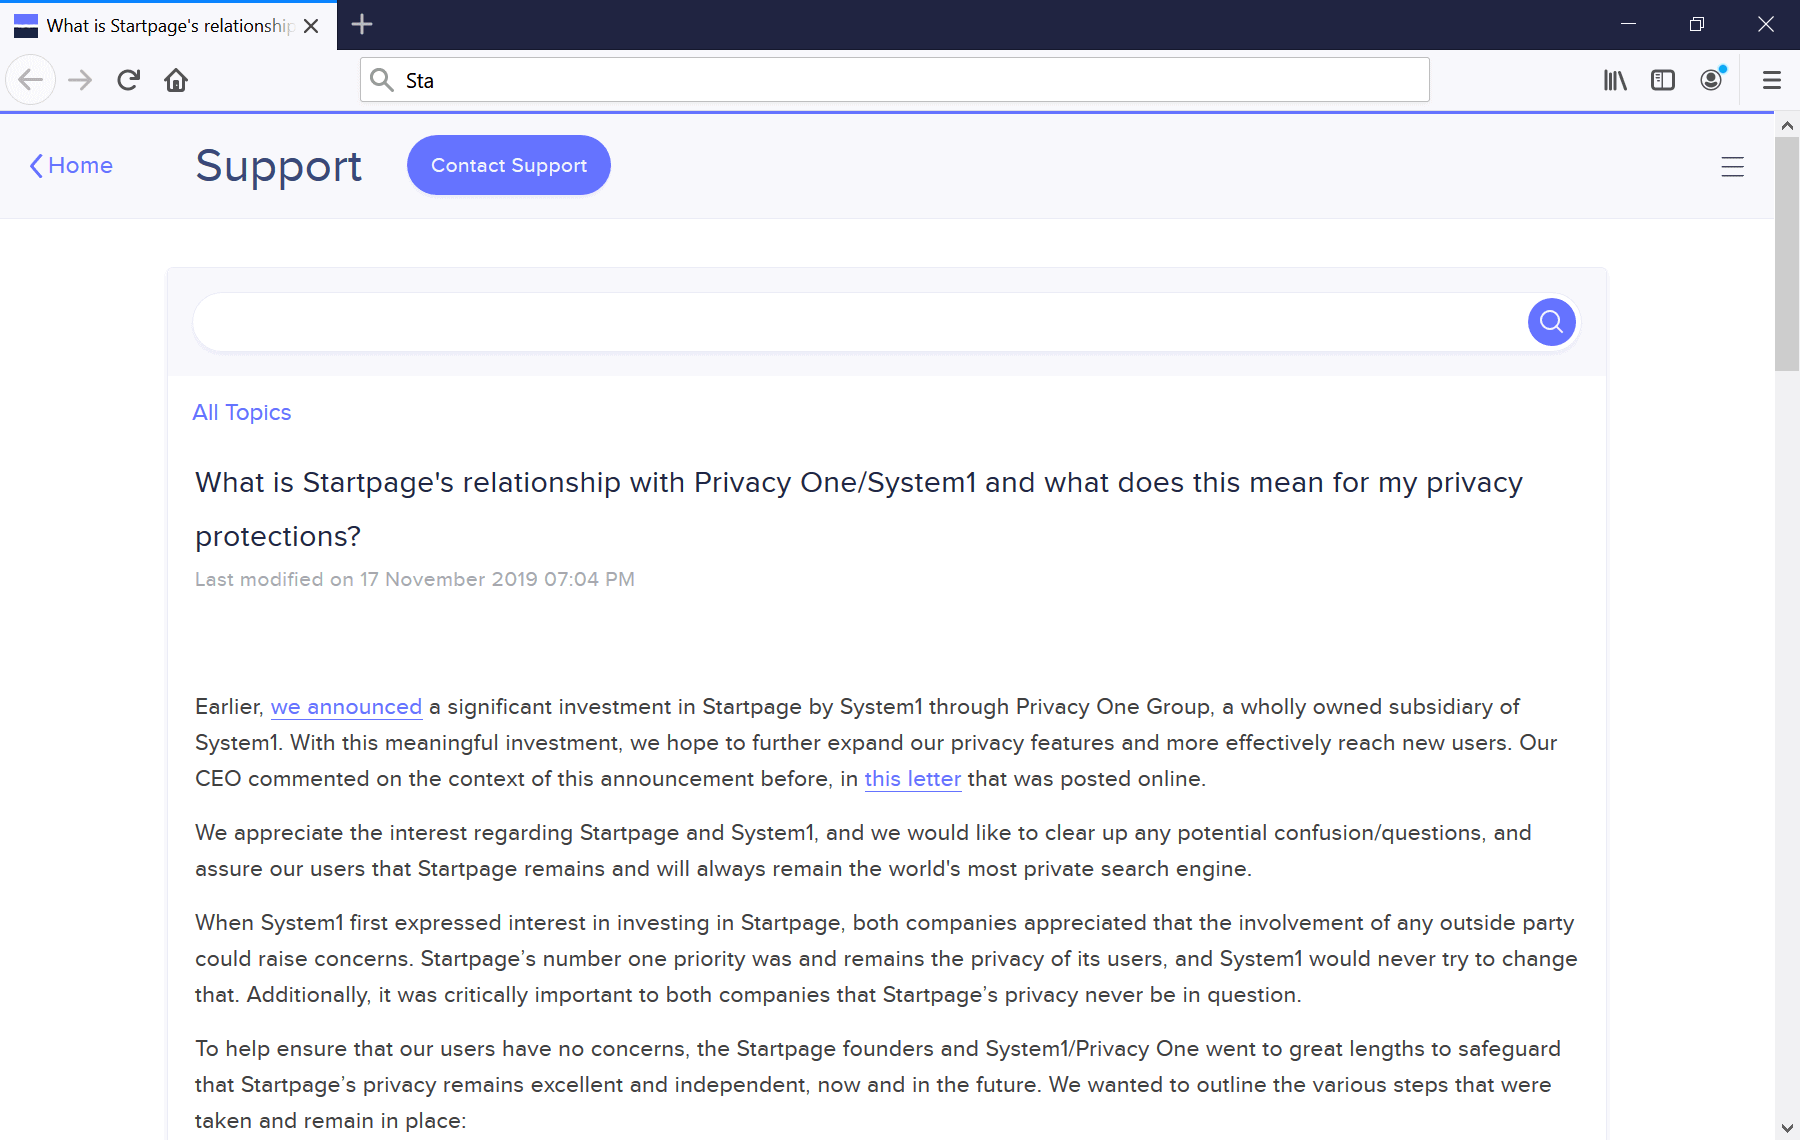 Startpage replies to questions about ownership change